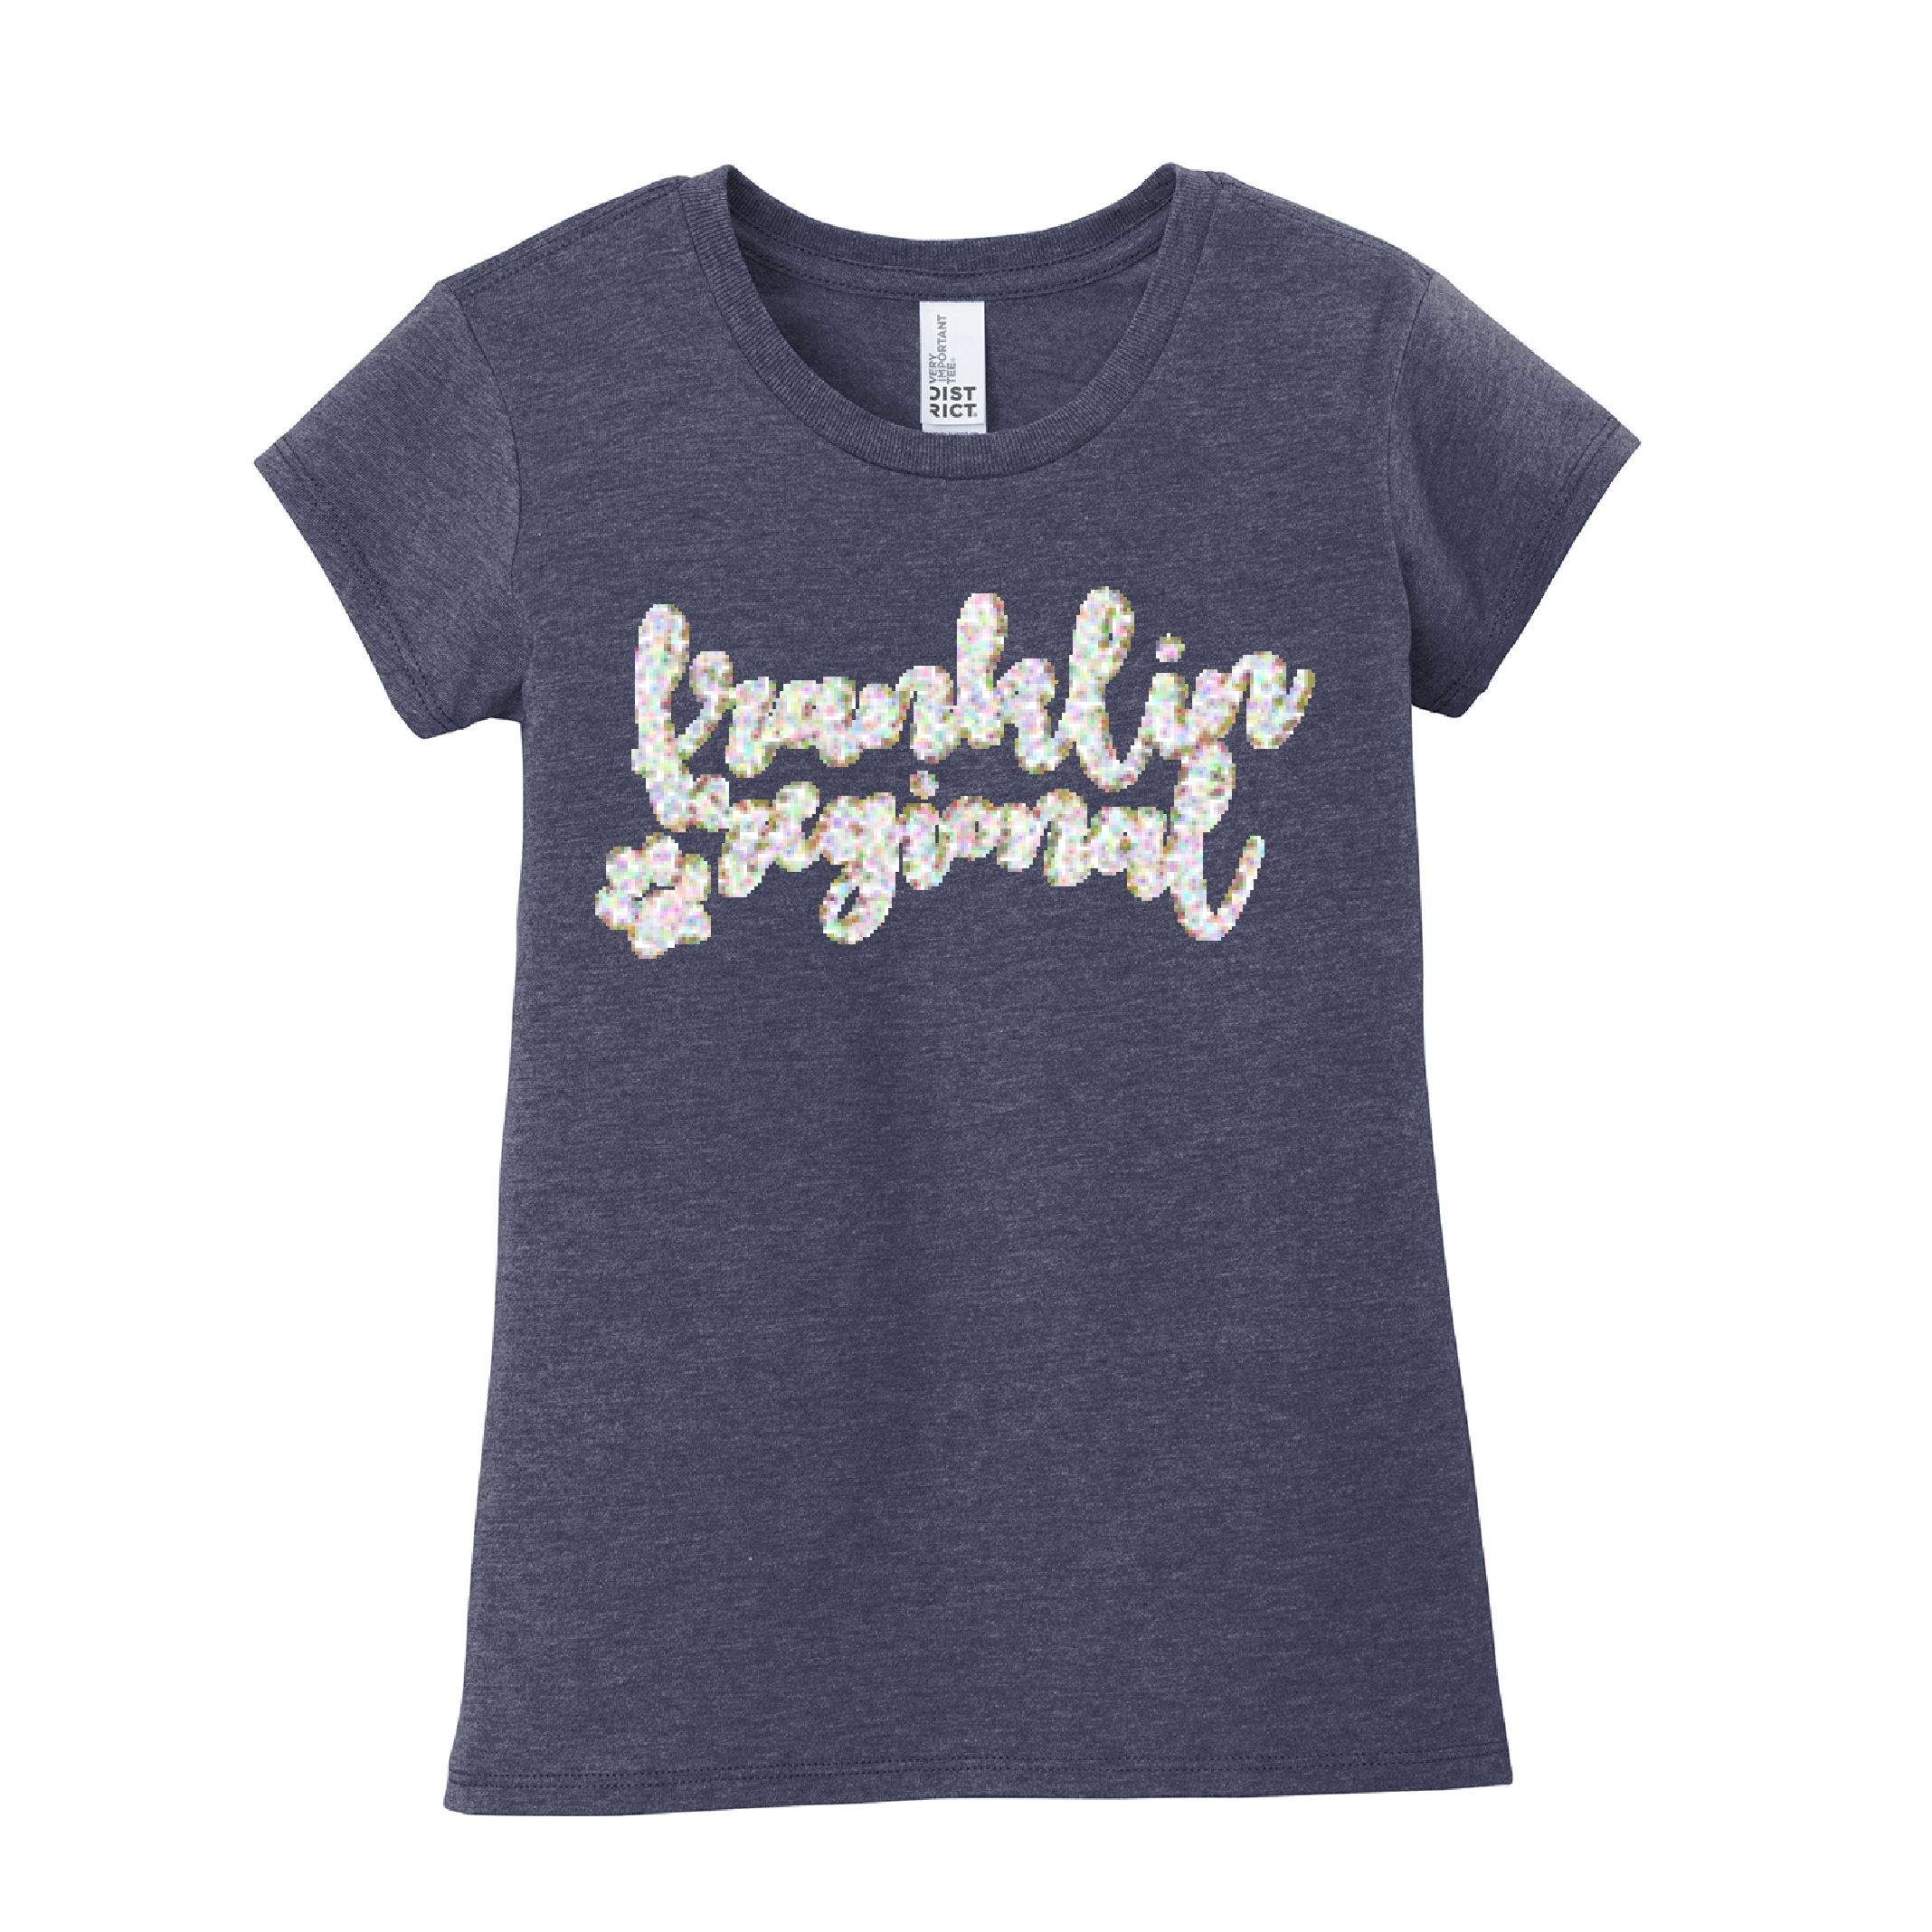 District Girls Very Important Tee GLITTER